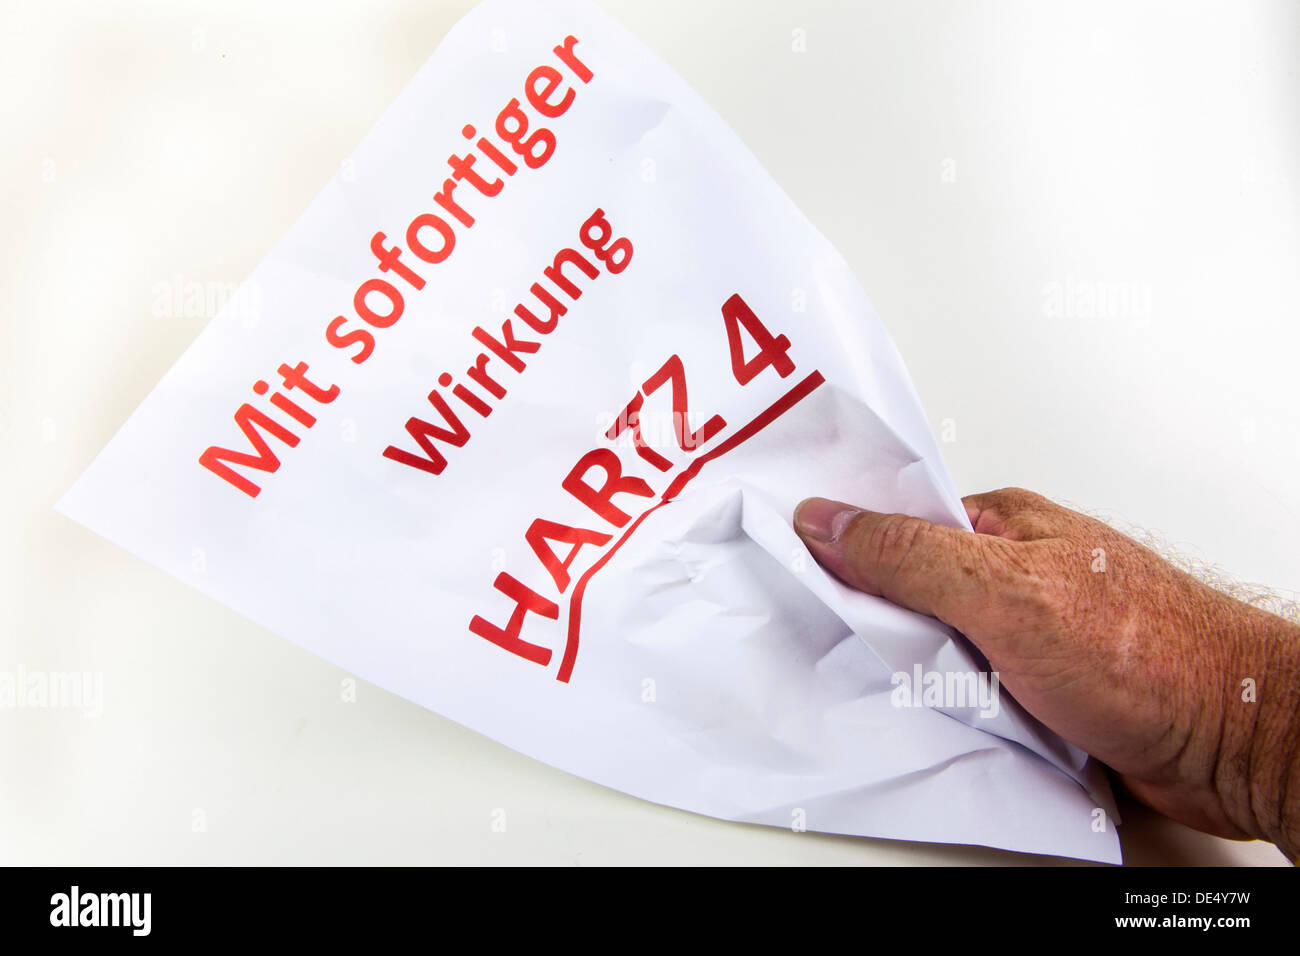 Crumpled letter, Mit sofortiger Wirkung Hartz 4, German for with immediate effect, Hartz 4, German welfare benefits - Stock Image